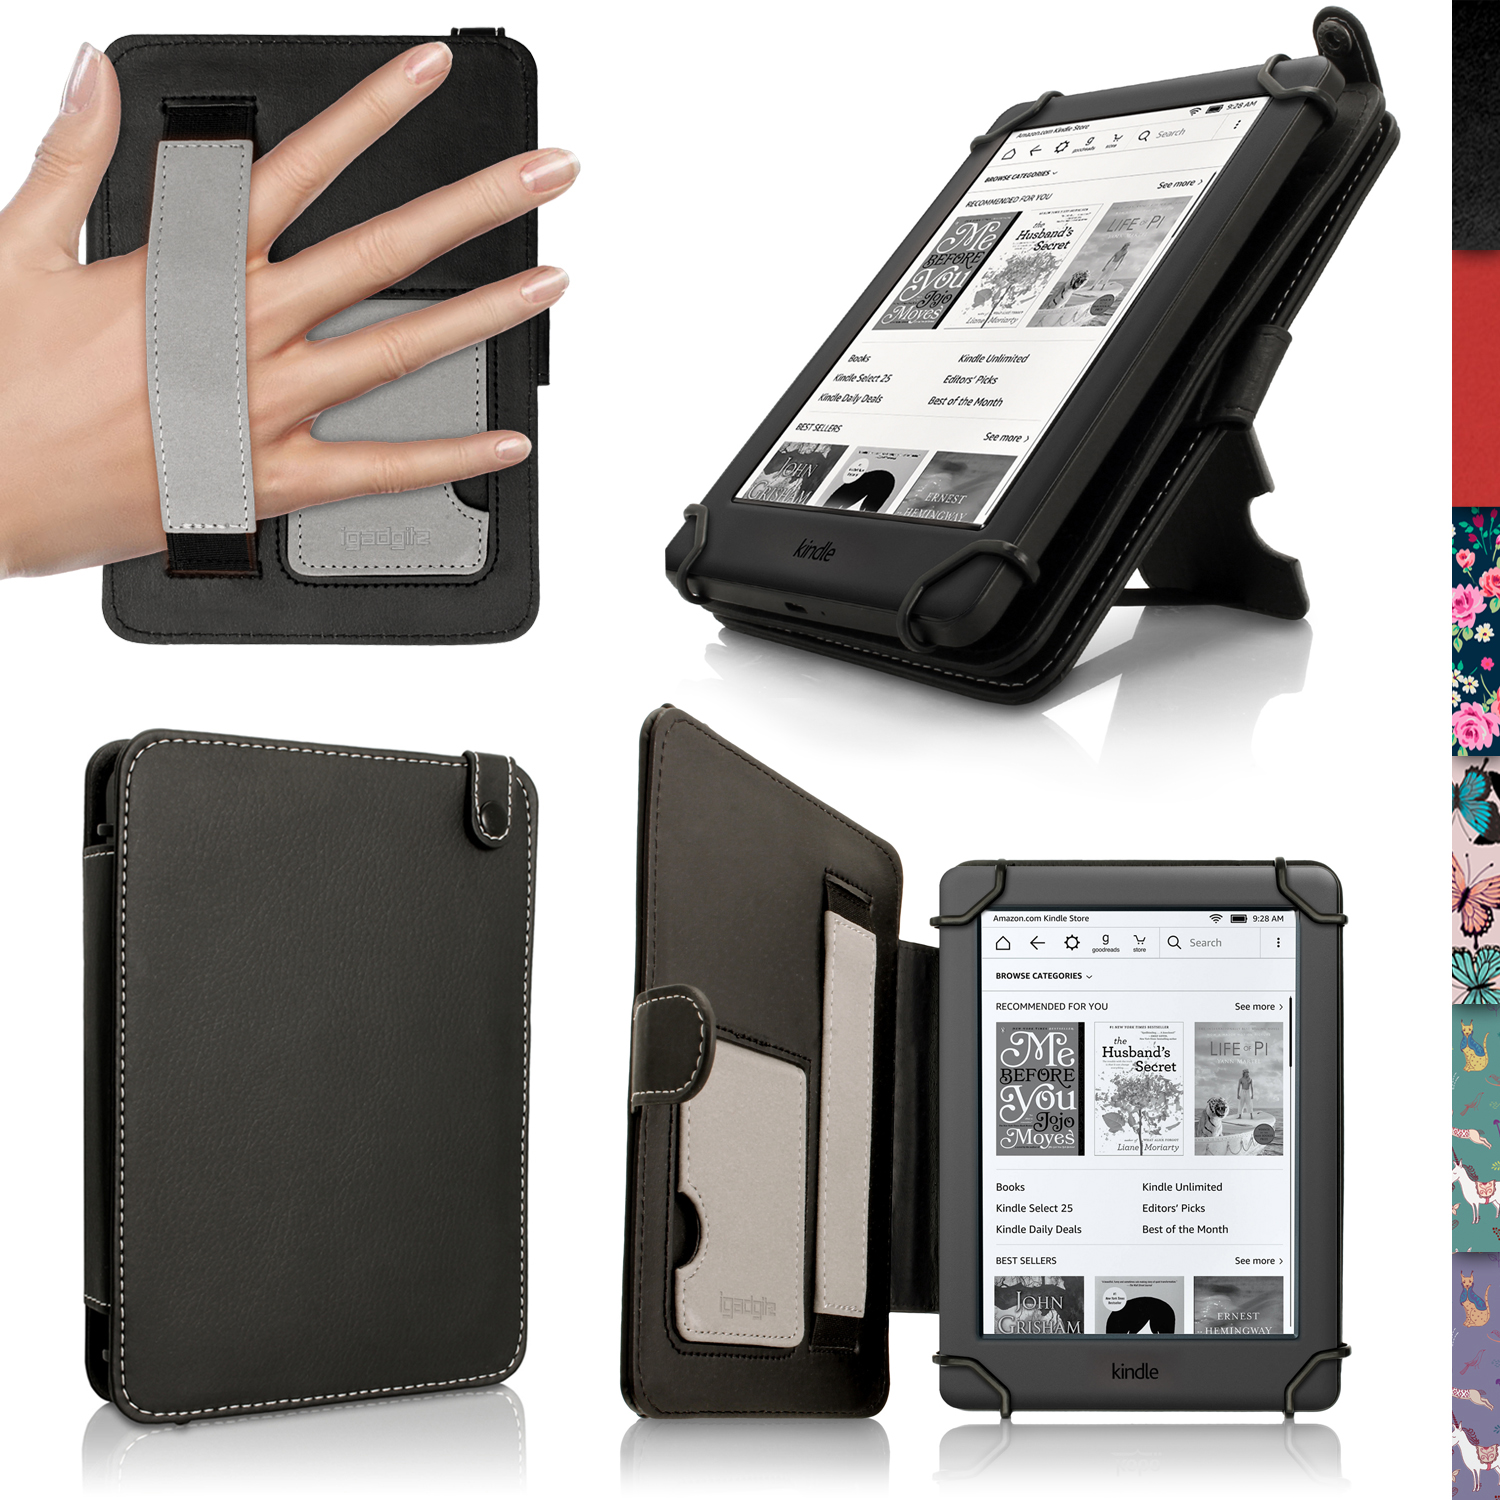 "iGadgitz Black PU Leather Folio Case Cover for Amazon Kindle E-Reader 6"" 2016 with Hand Strap & Viewing Stand"